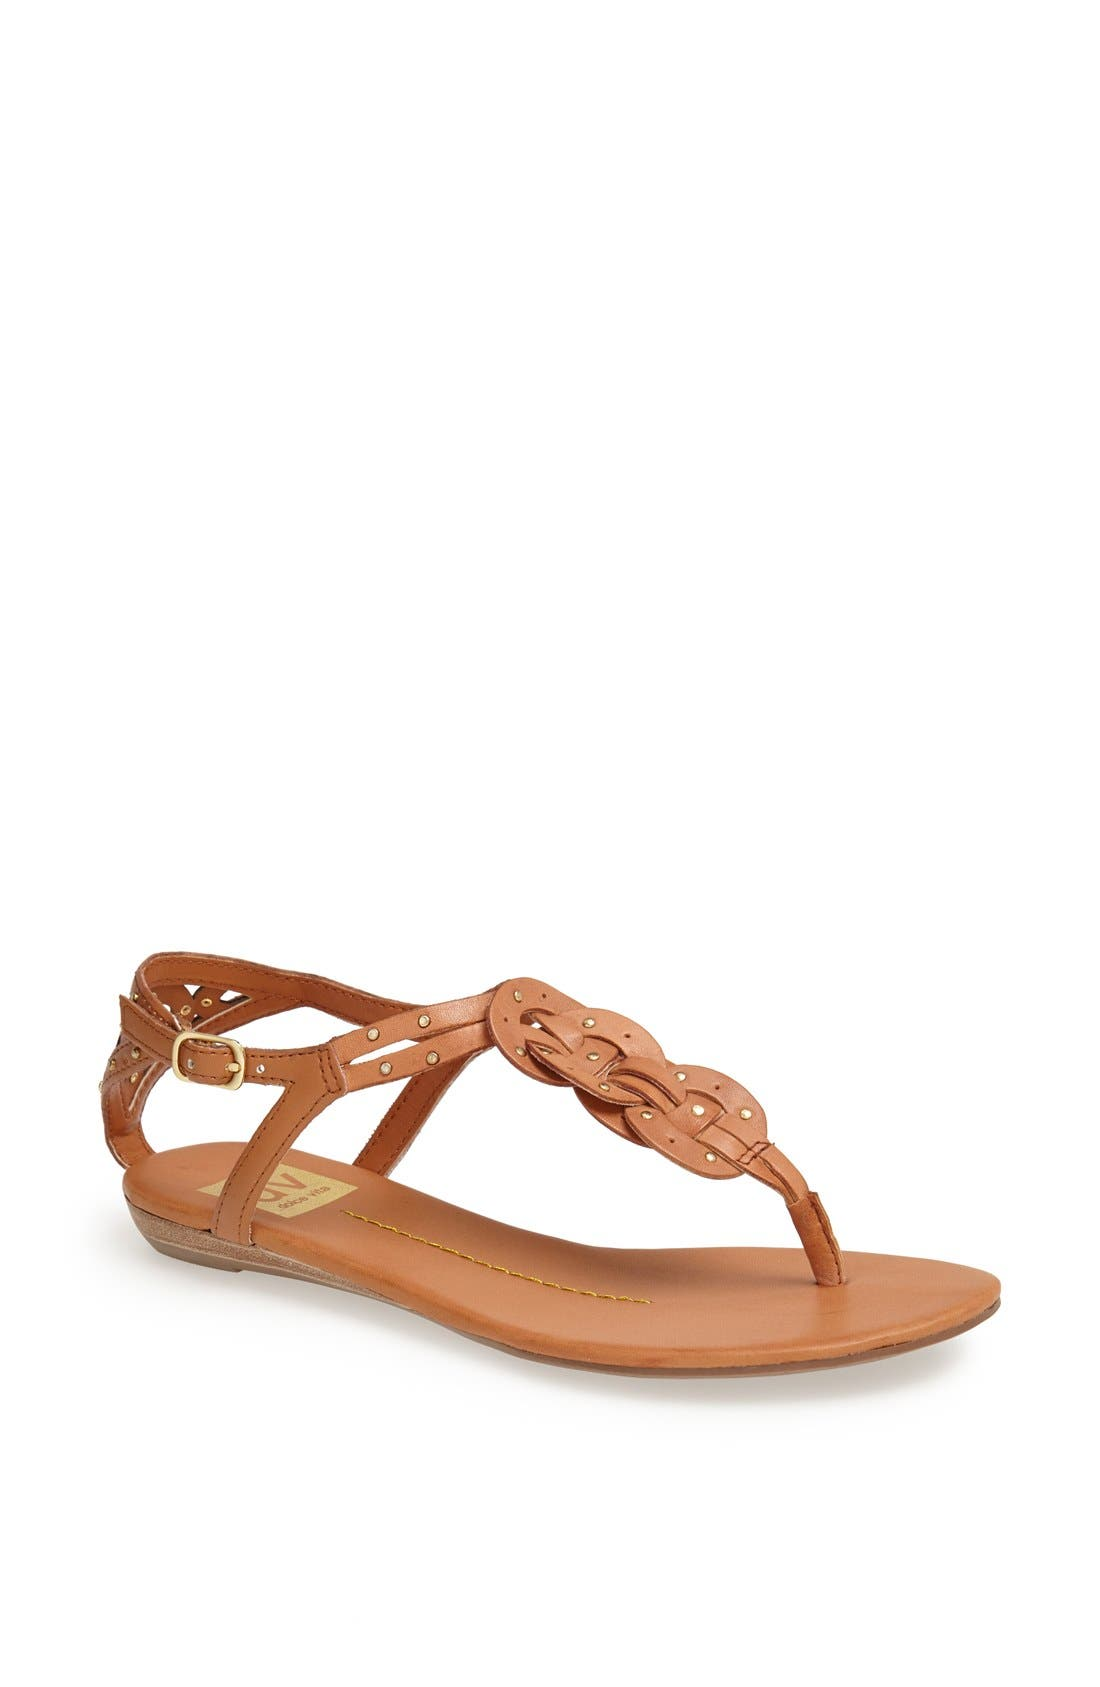 Main Image - DV by Dolce Vita 'Azania' Leather Thong Sandal